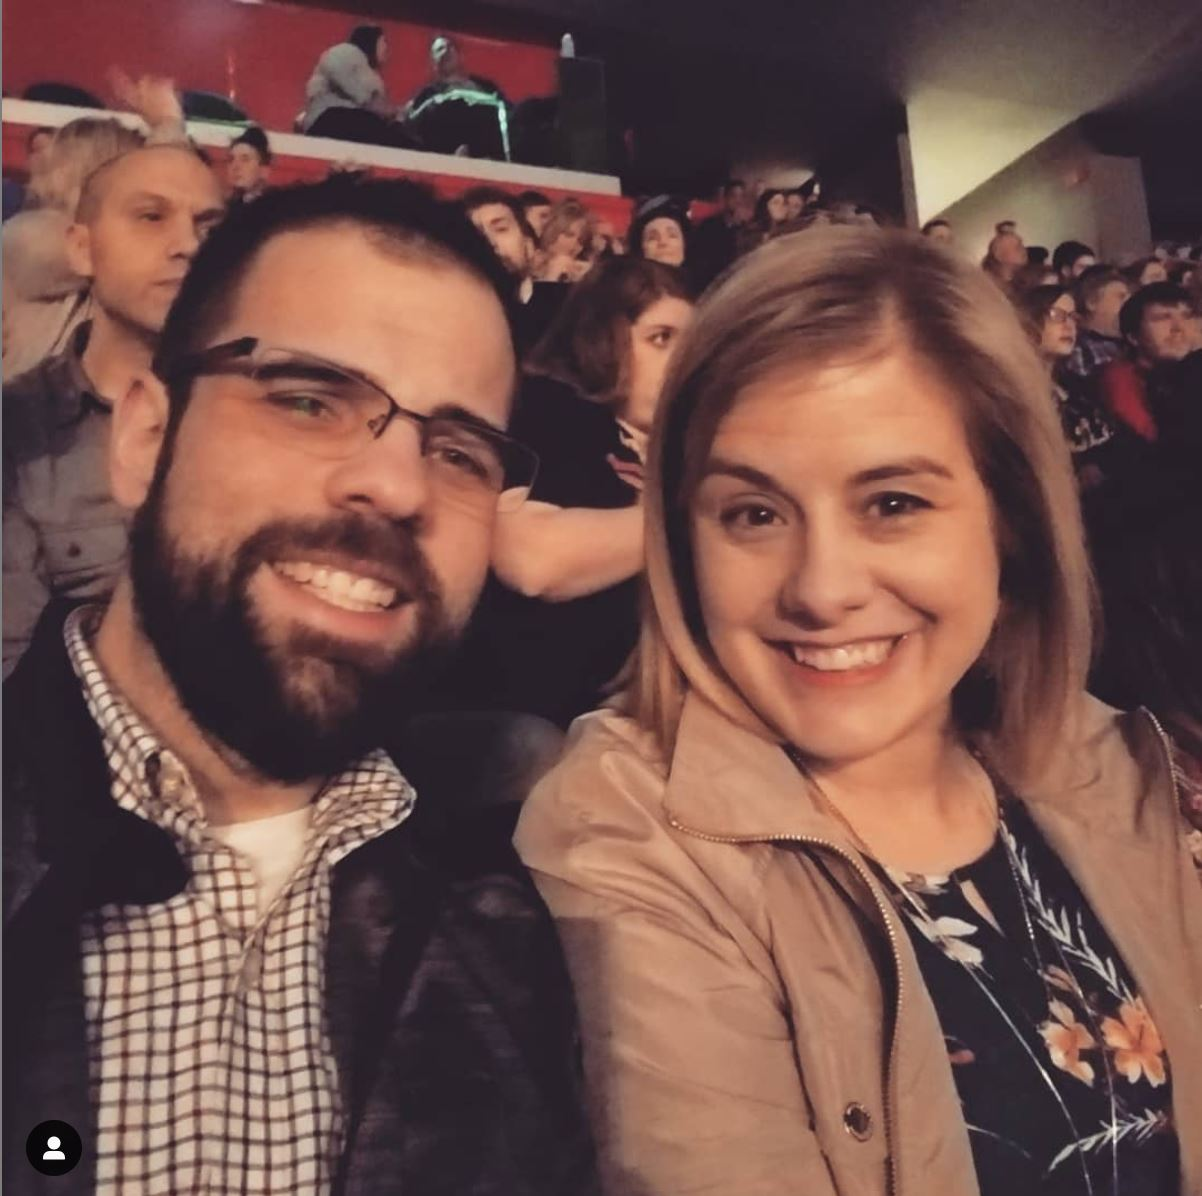 Brittany and Jordan enjoyed one last date night in downtown Ann Arbor to see Mumford & Sons